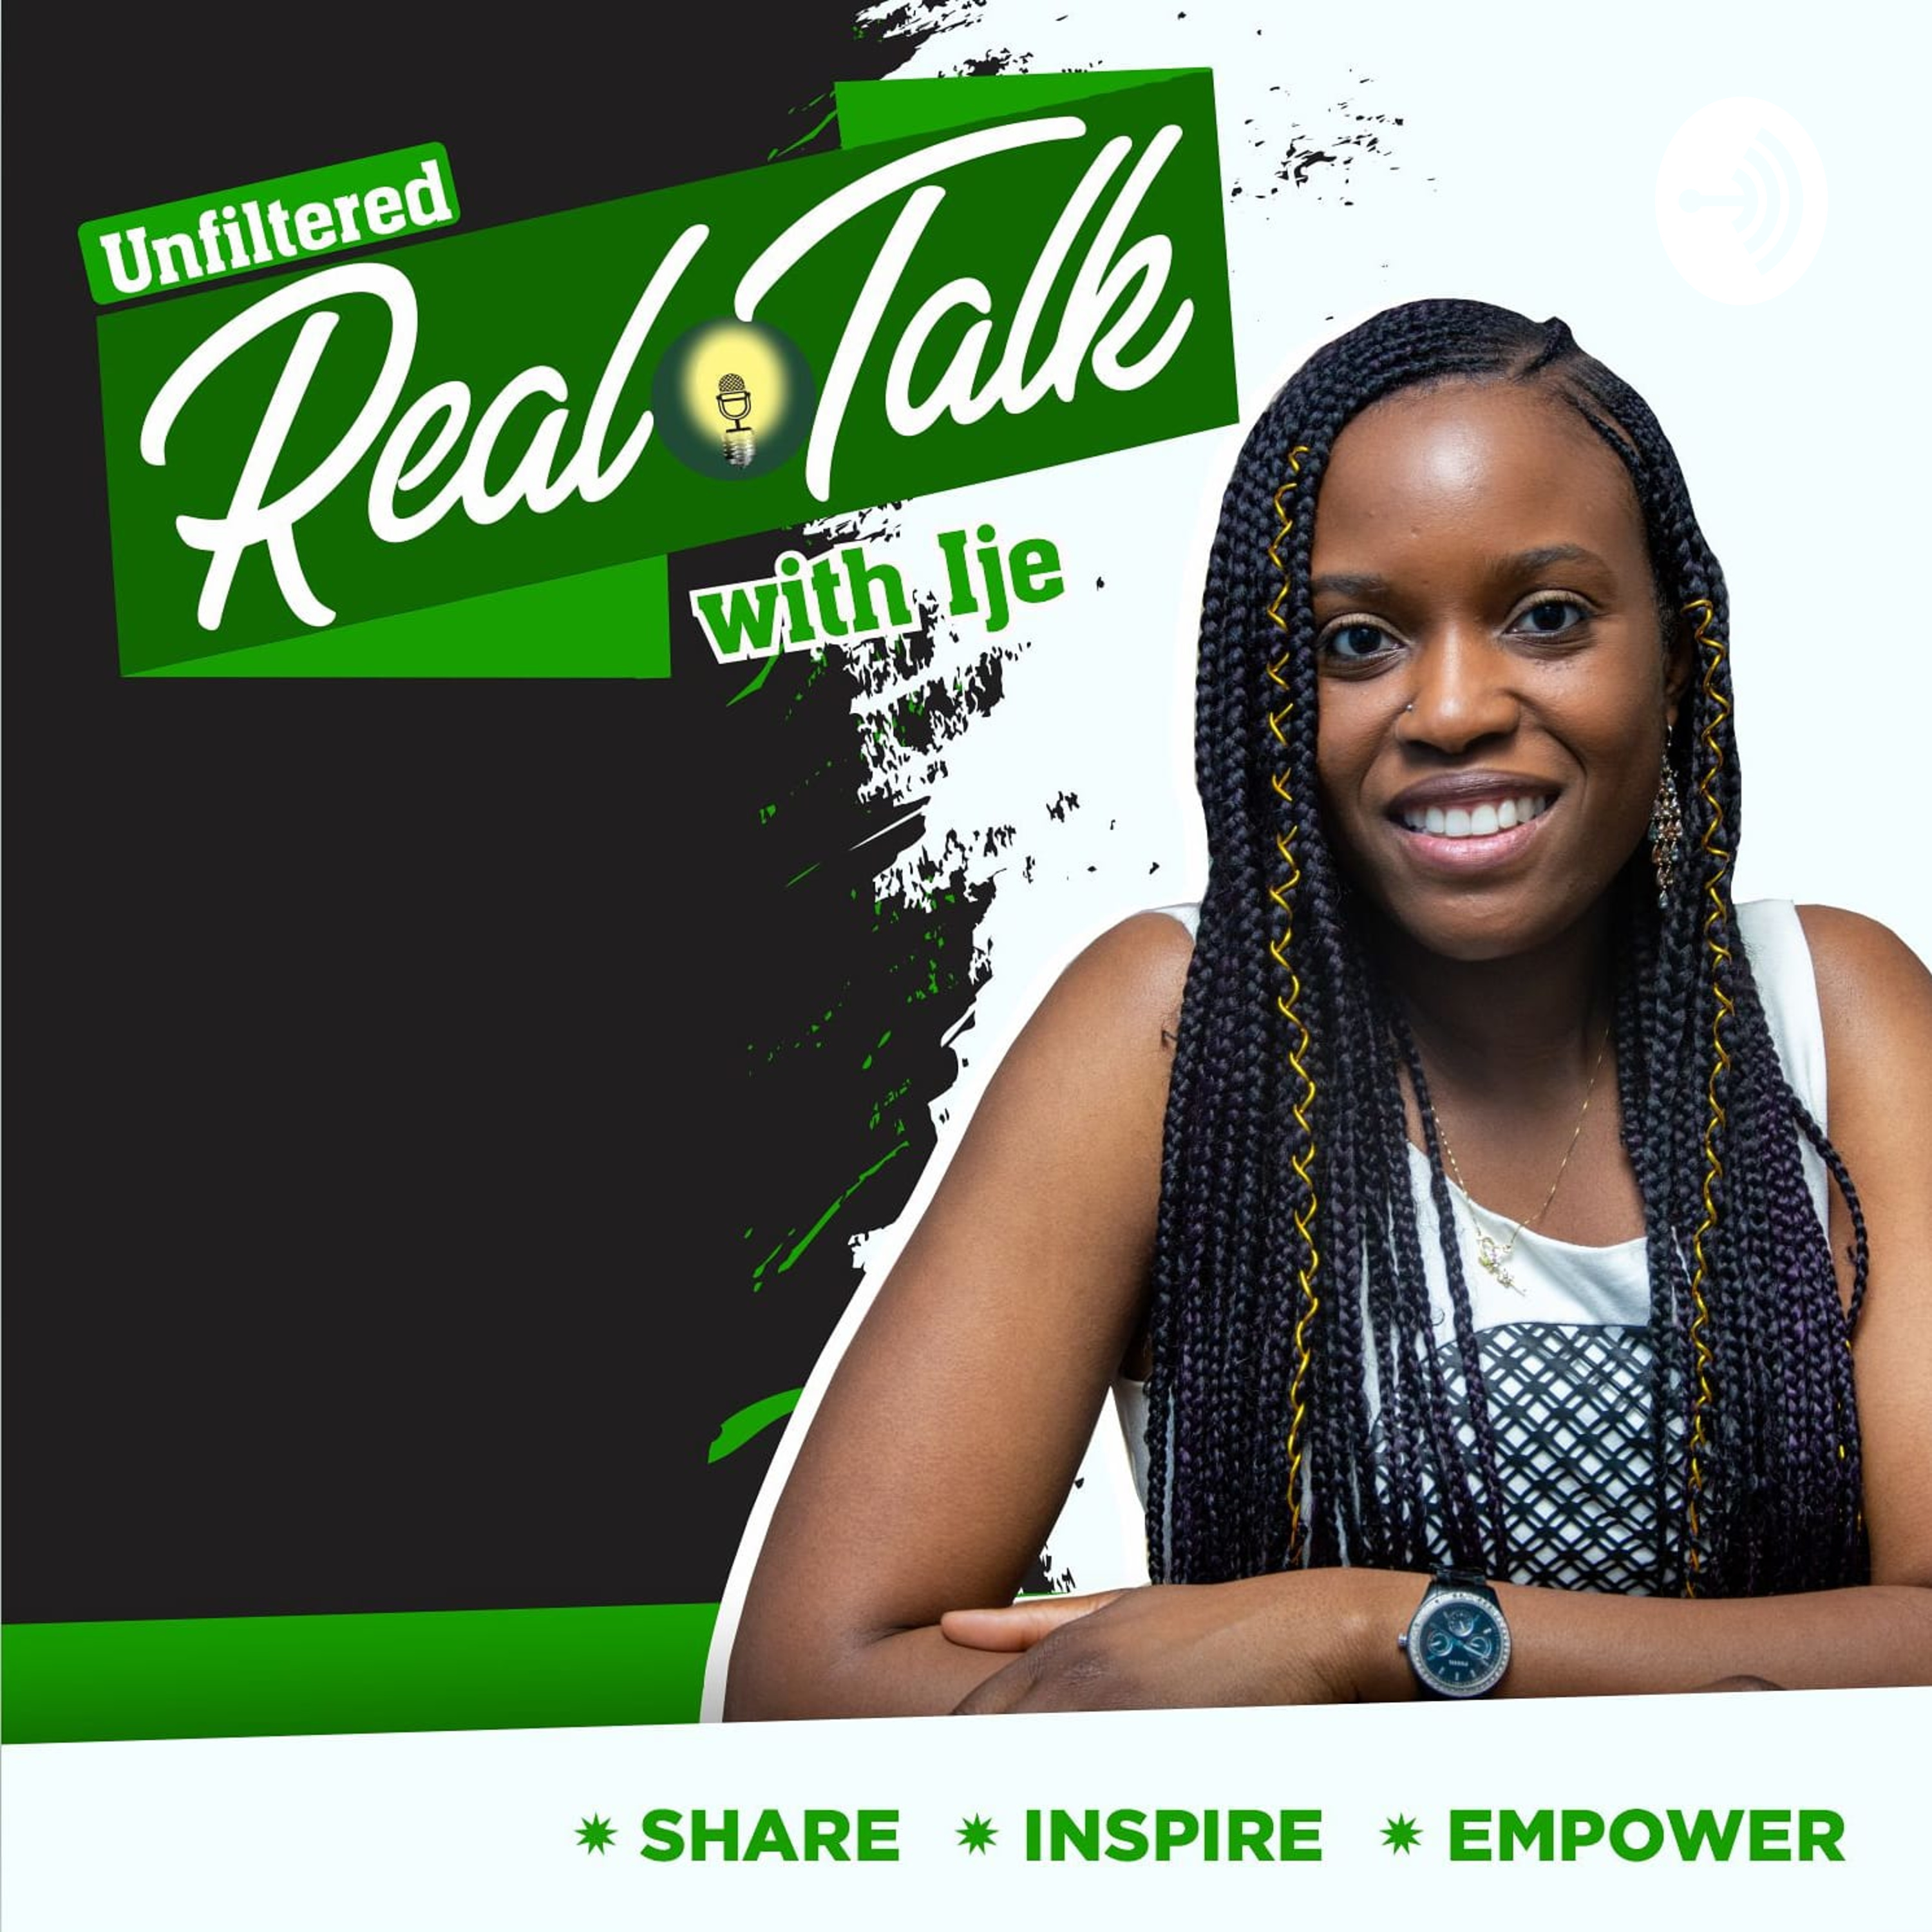 The Unfiltered Real Talk Podcast